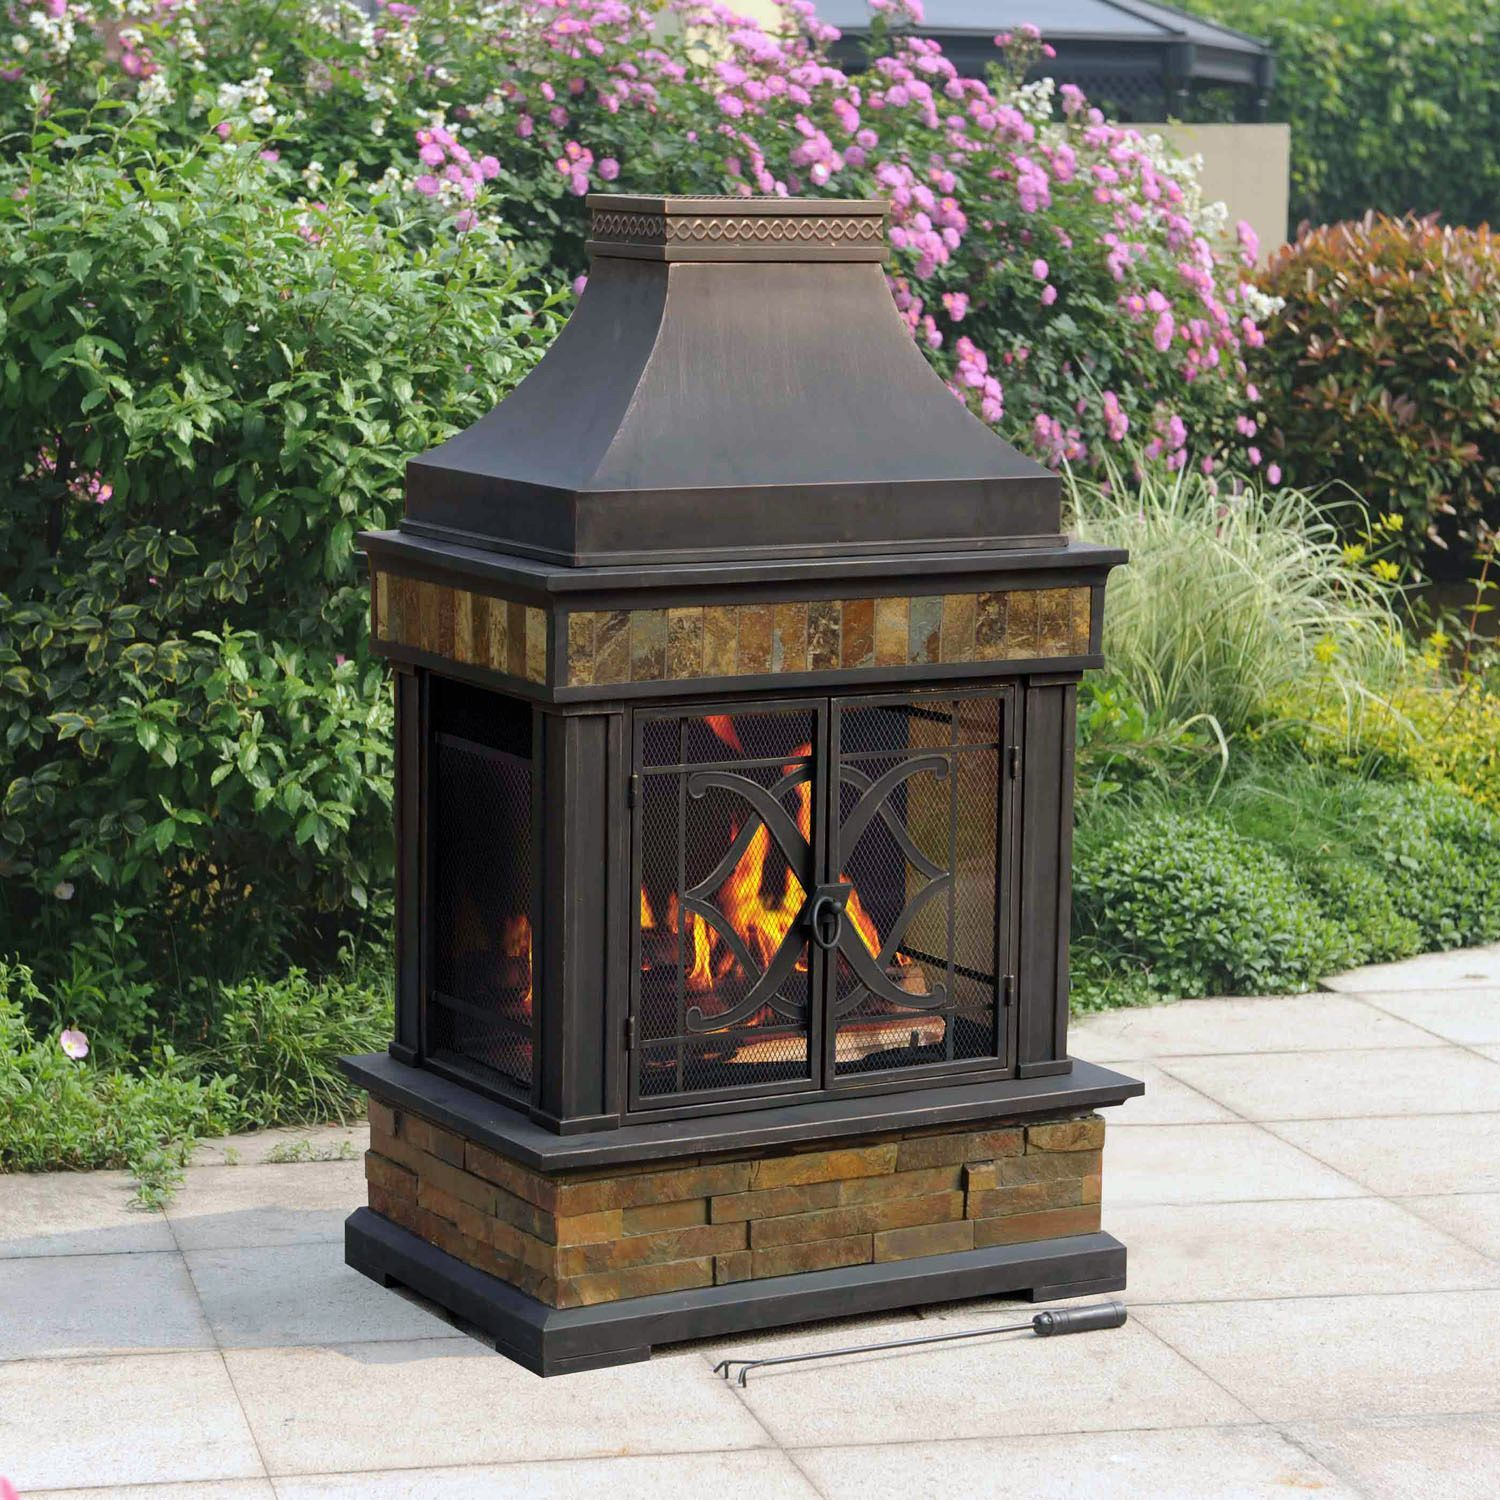 Outdoor fire and Fire pit propane